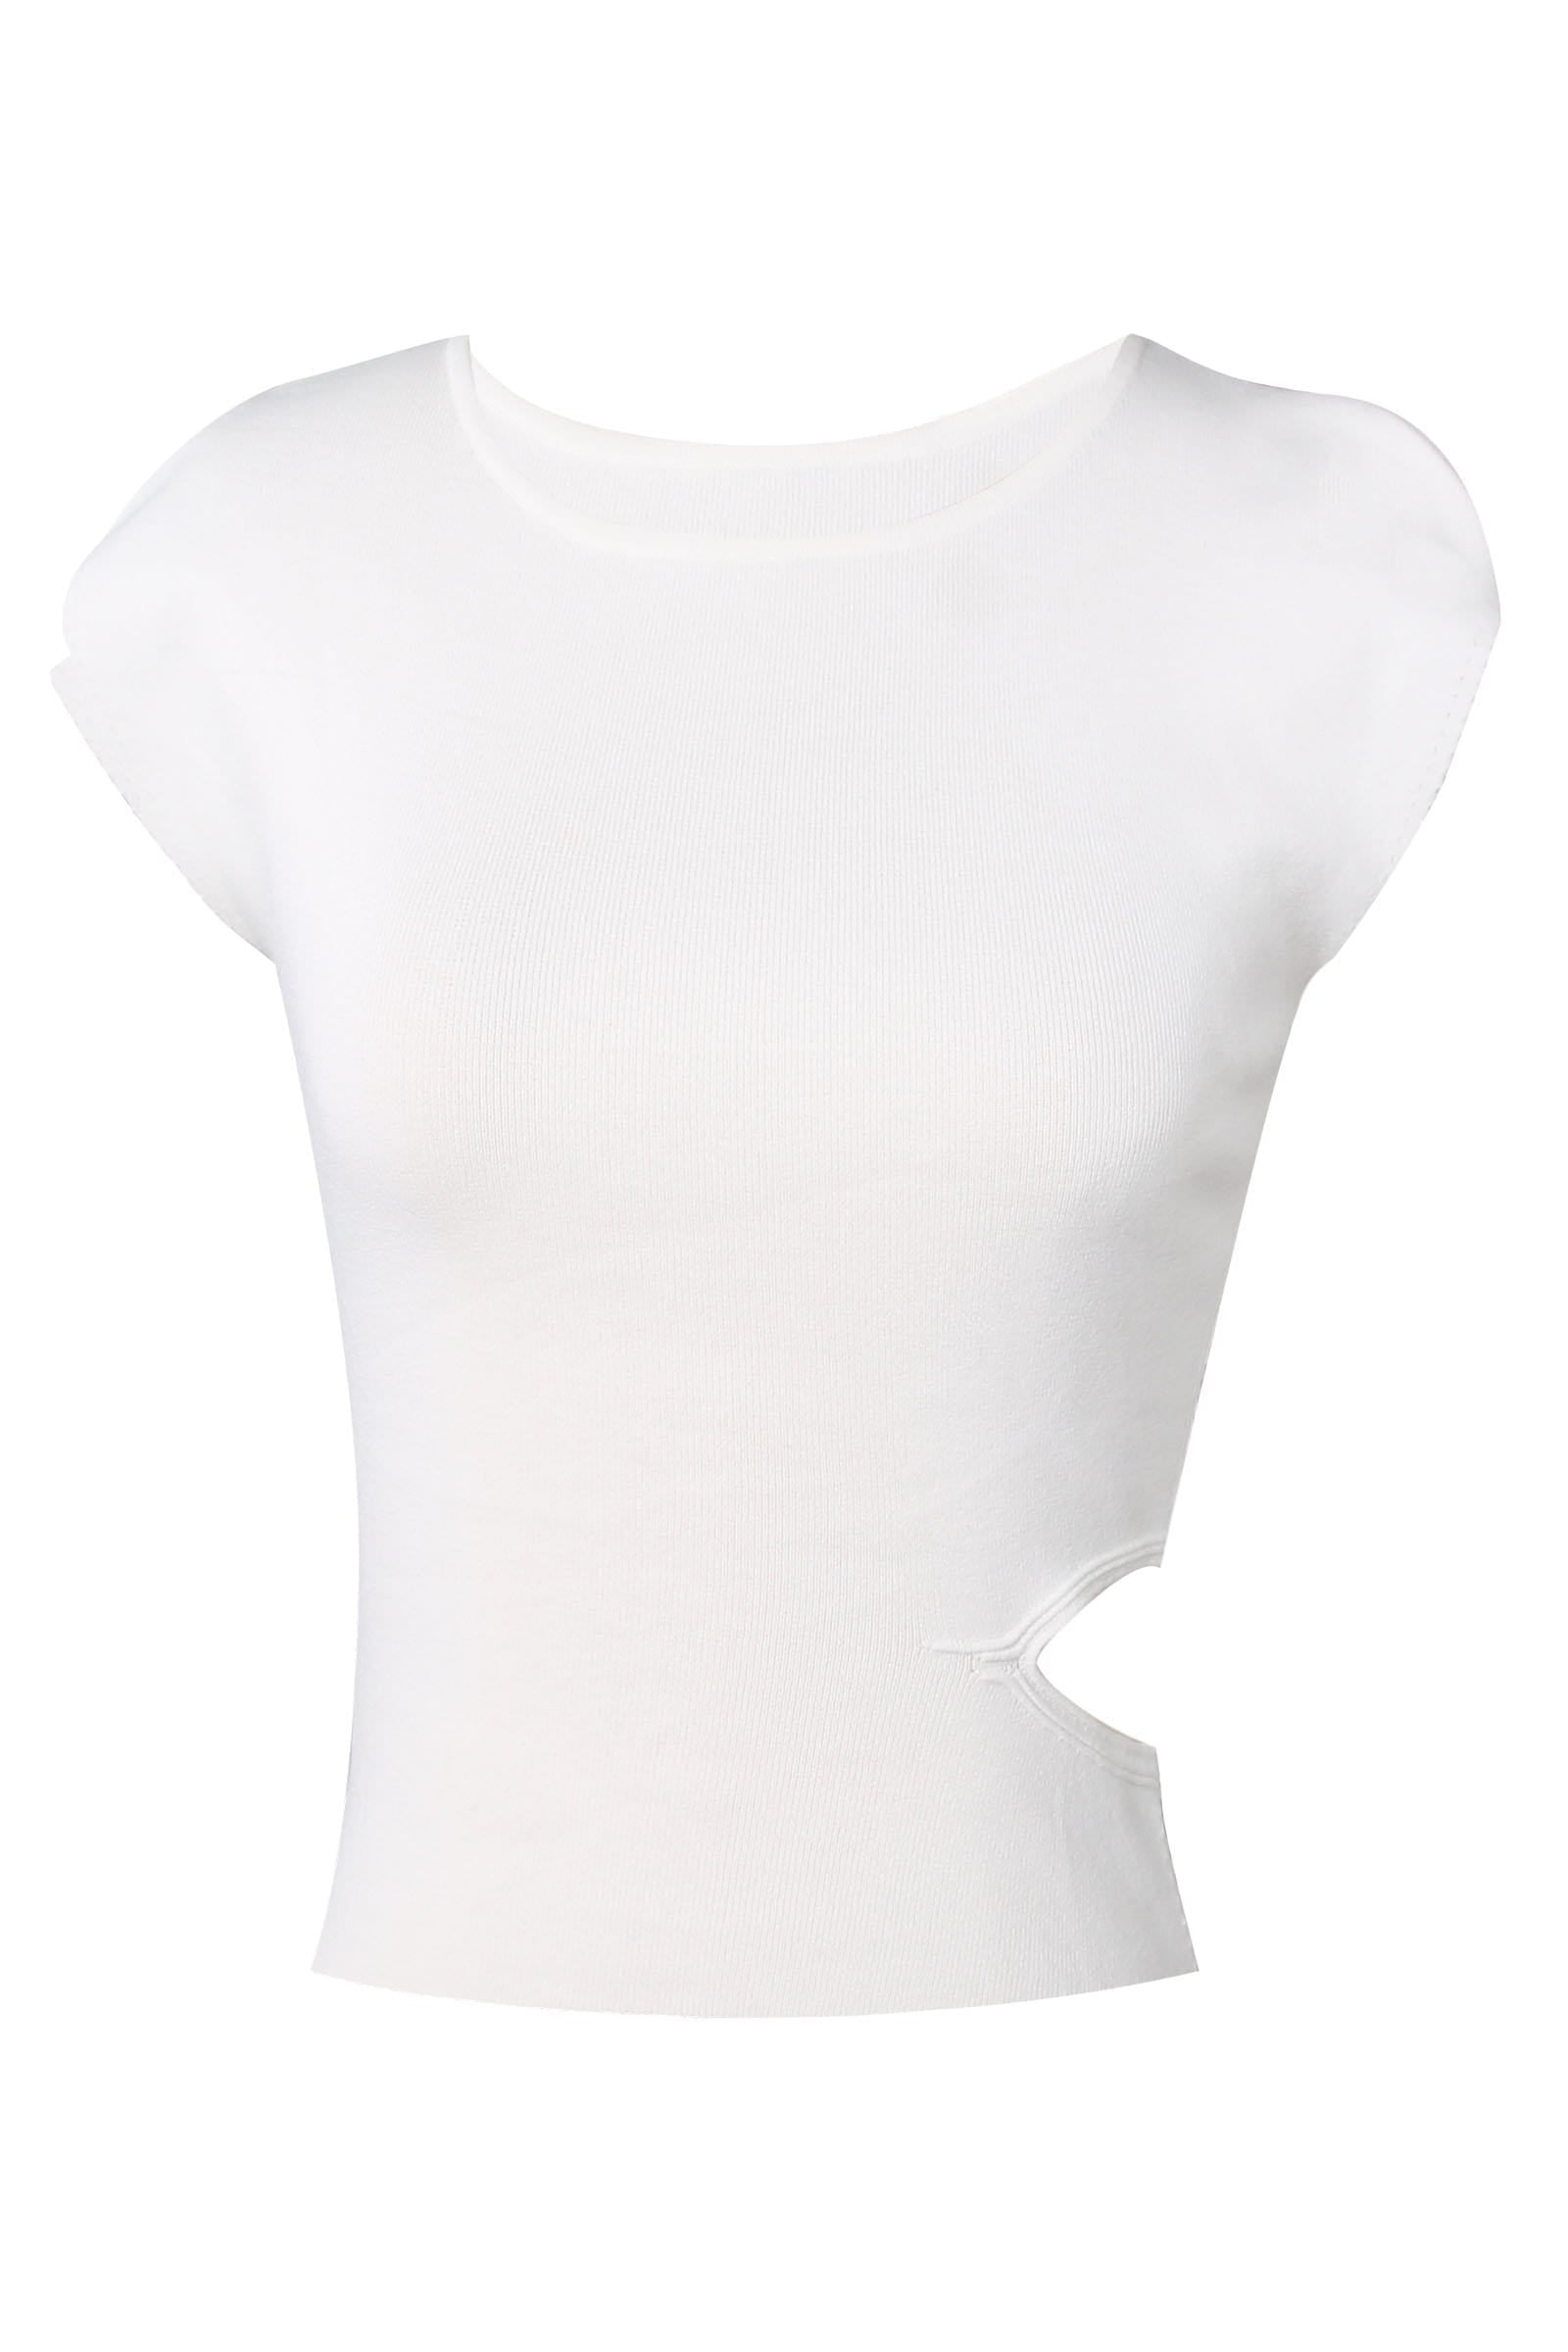 Callie White Cutout Basic Tee